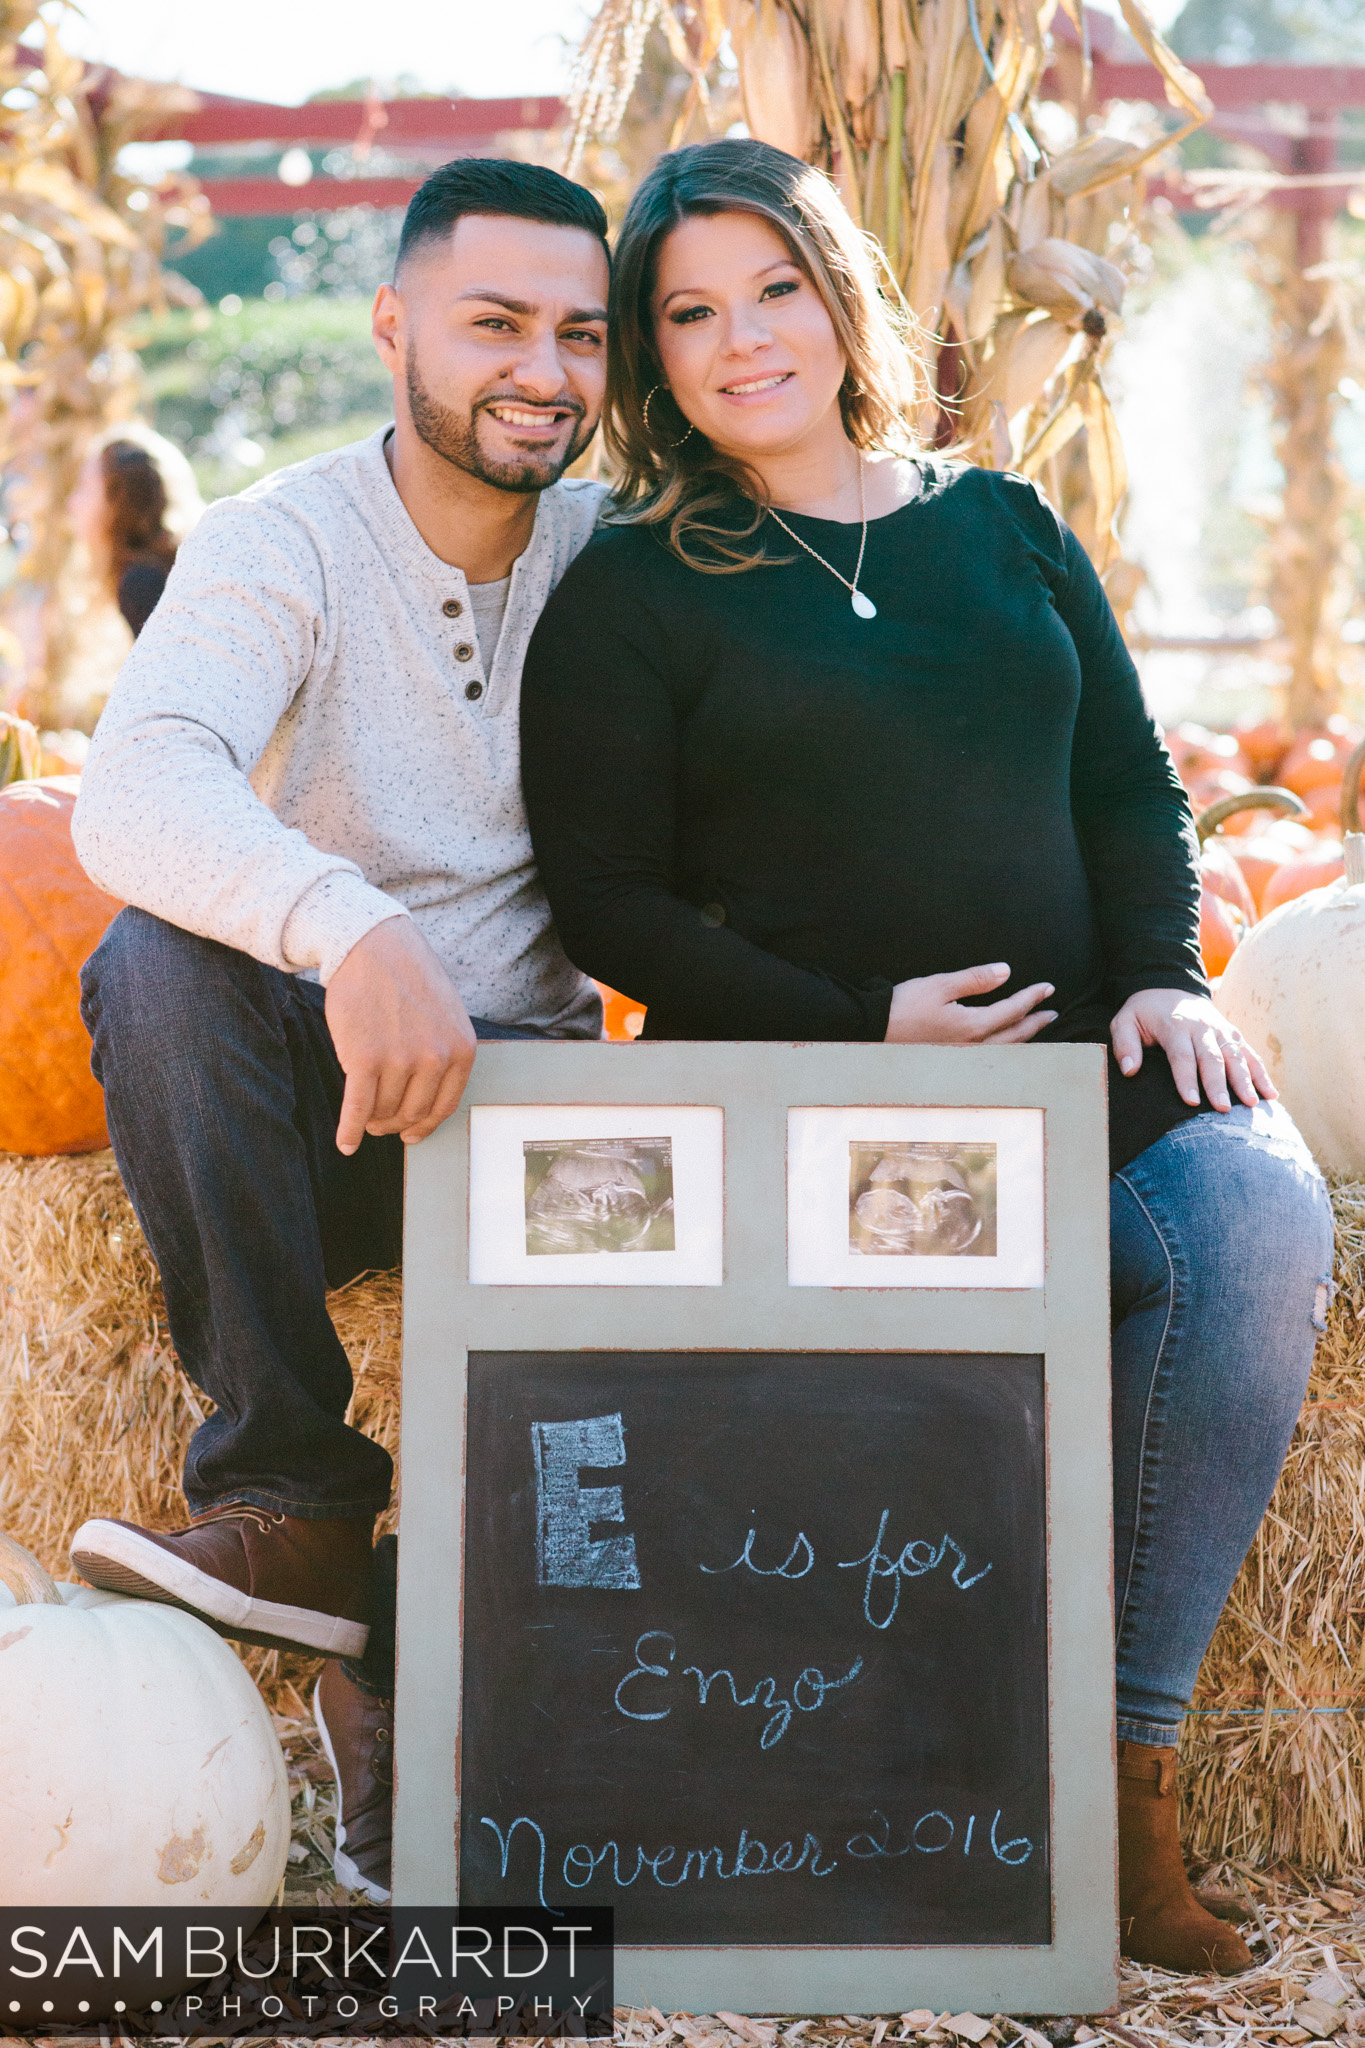 sburkardt_maternity_connecticut_fall_orchard_photography_010.jpg